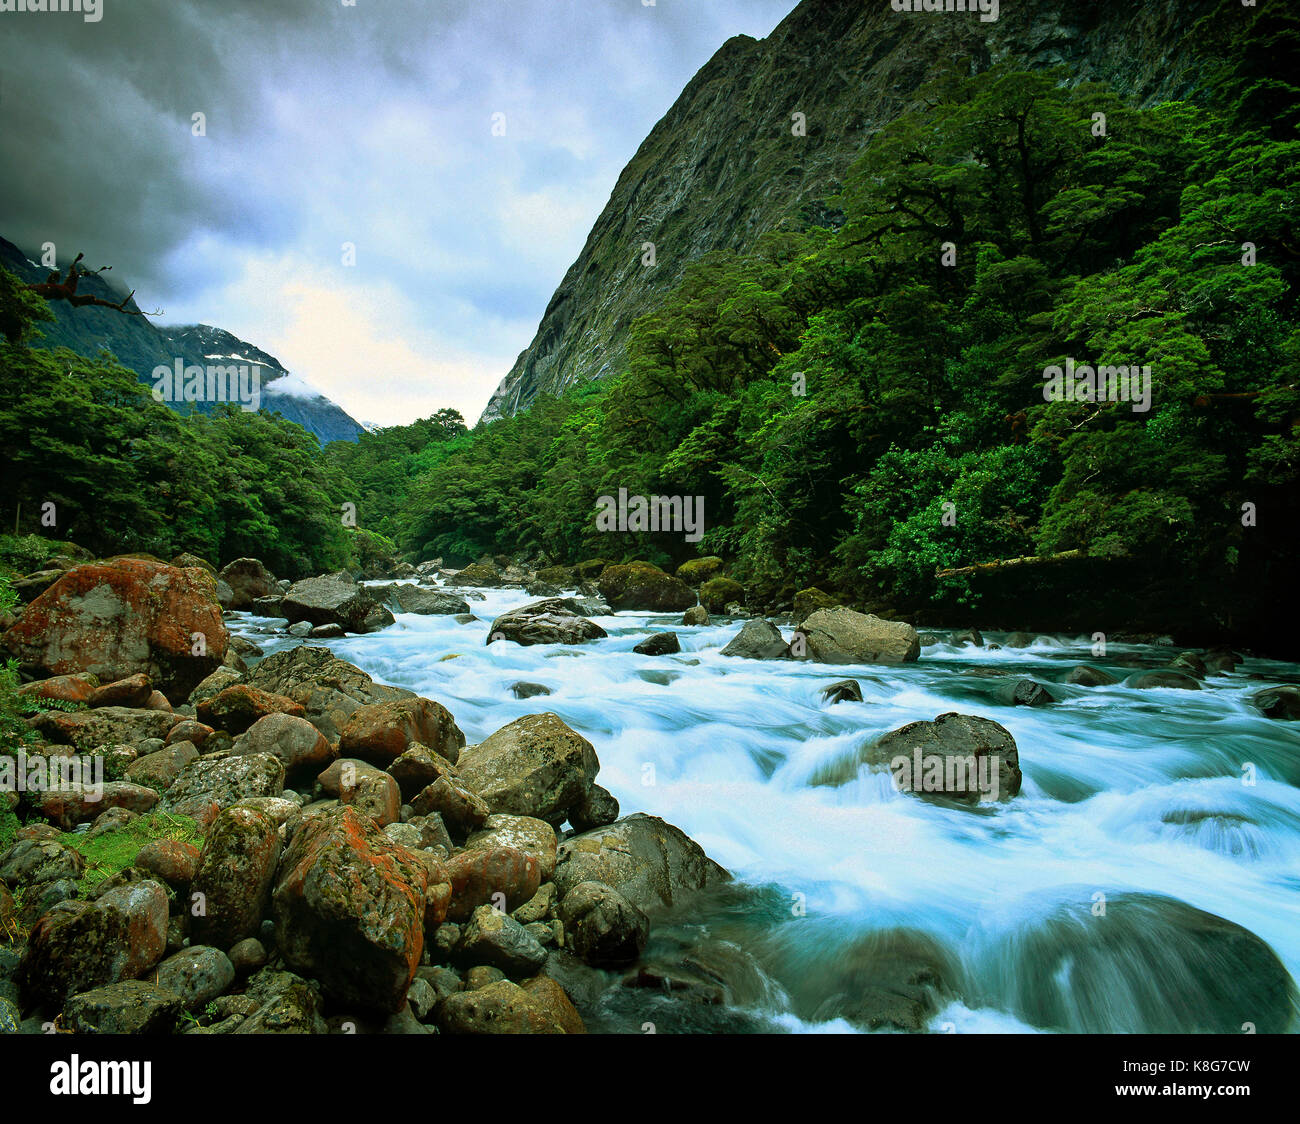 New Zealand. Milford Sound. Fast running stream. - Stock Image